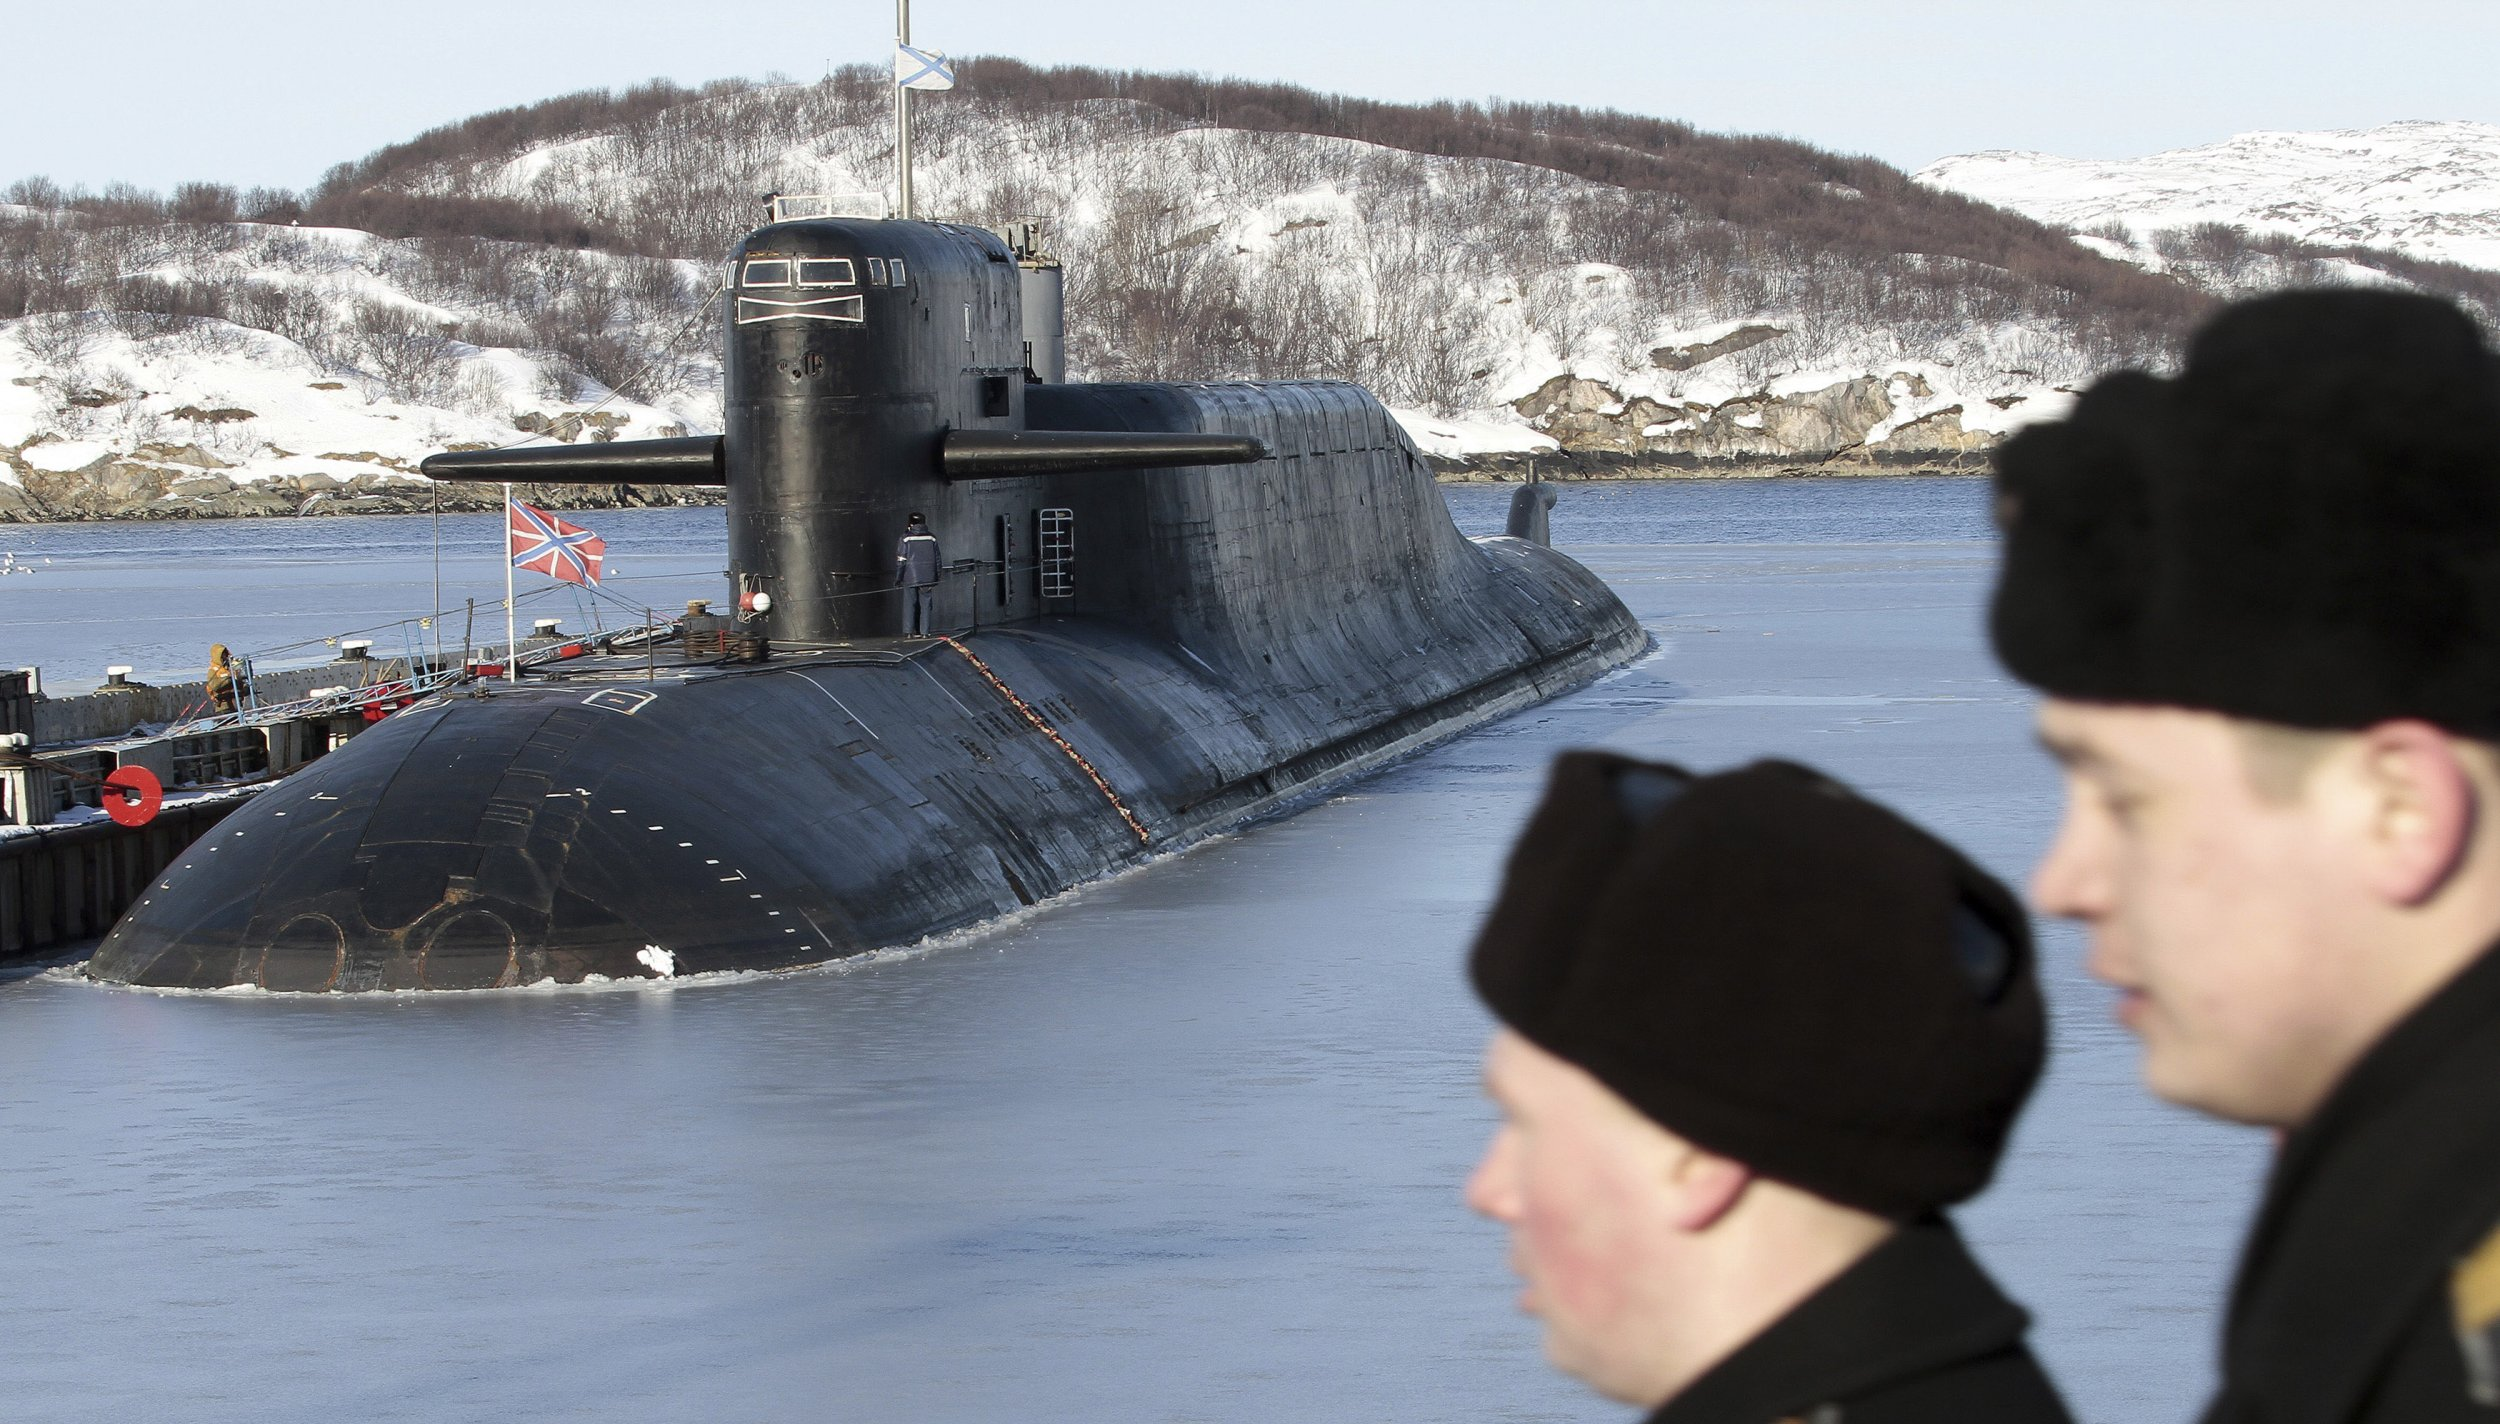 Russian Navy Carries Out Mock Attack On Nuclear Submarine